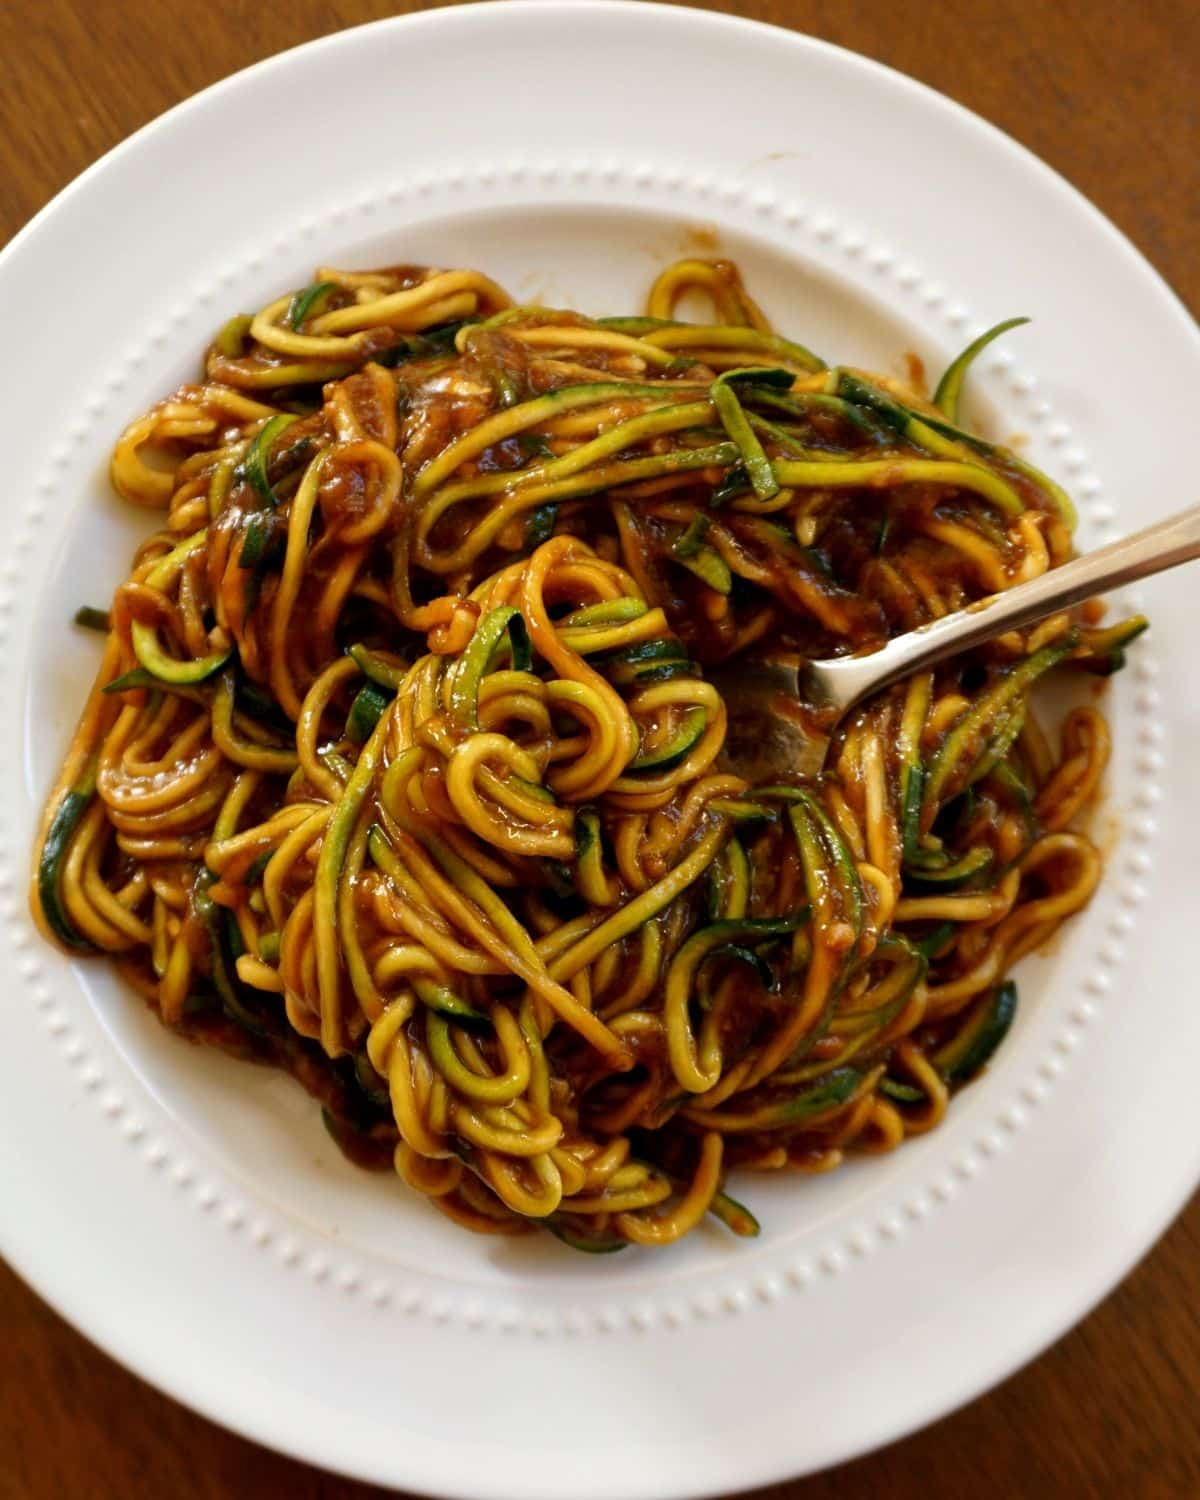 zucchini lo mein noodle spirals with Chinese inspired sauce